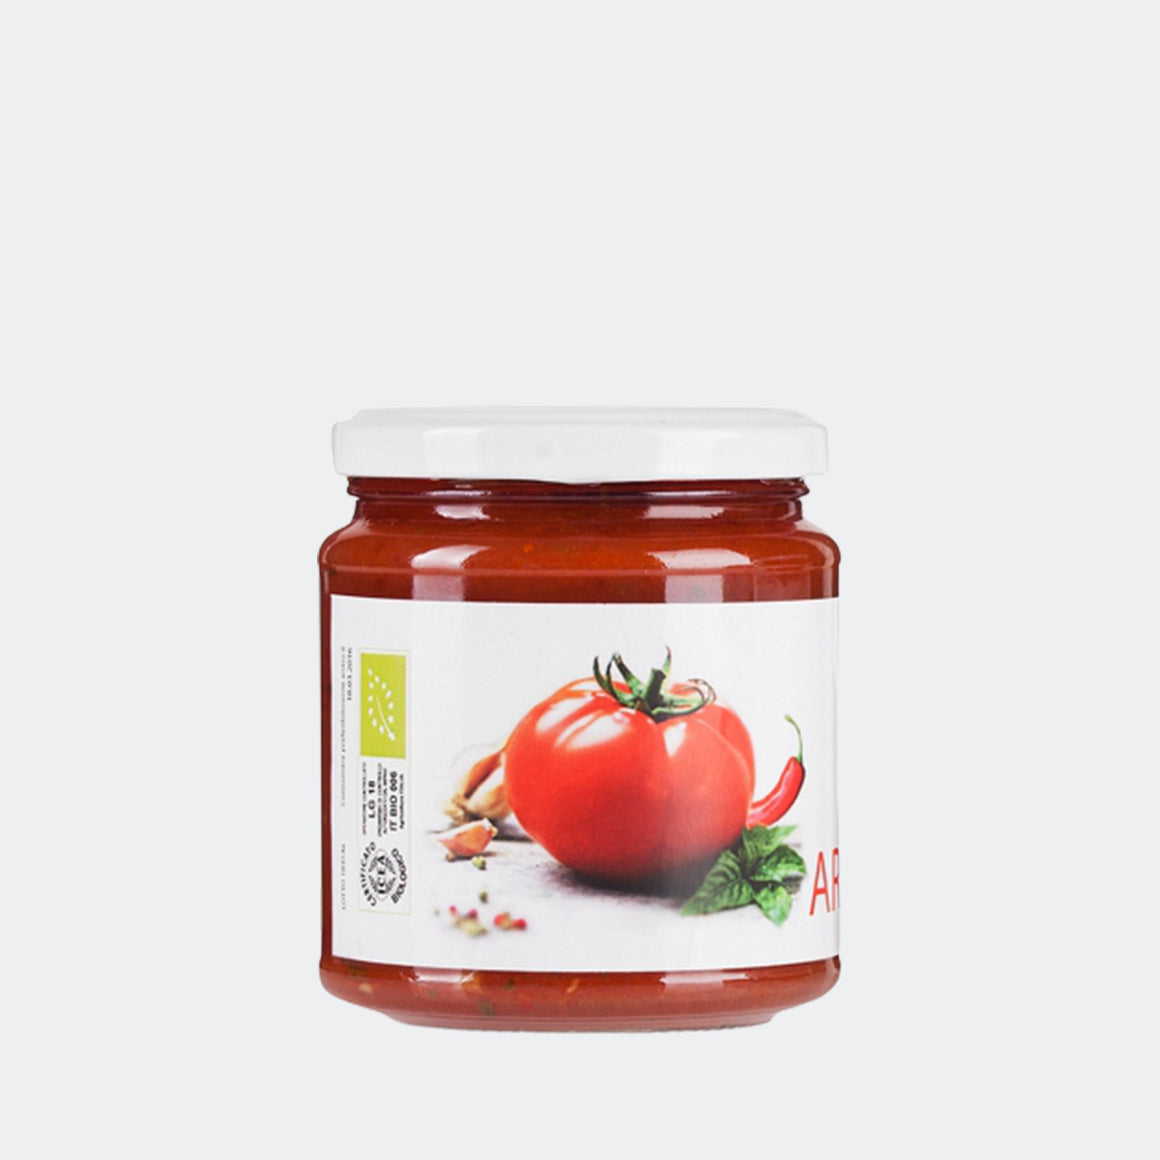 Organic Ready-made Arrabbiata sauce